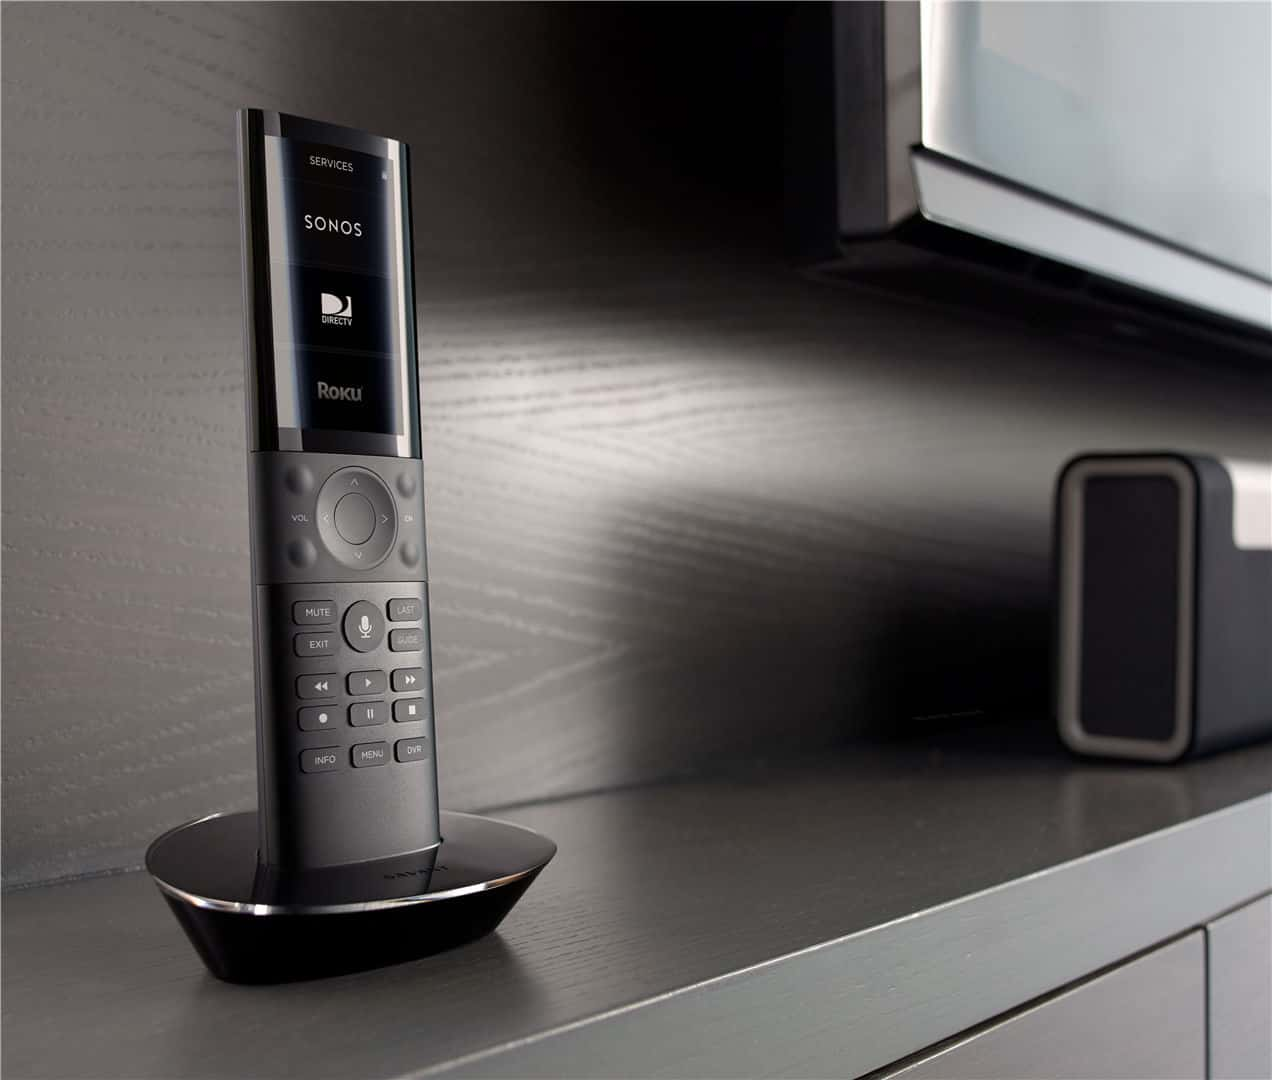 Savant Remote and Sonos Speaker